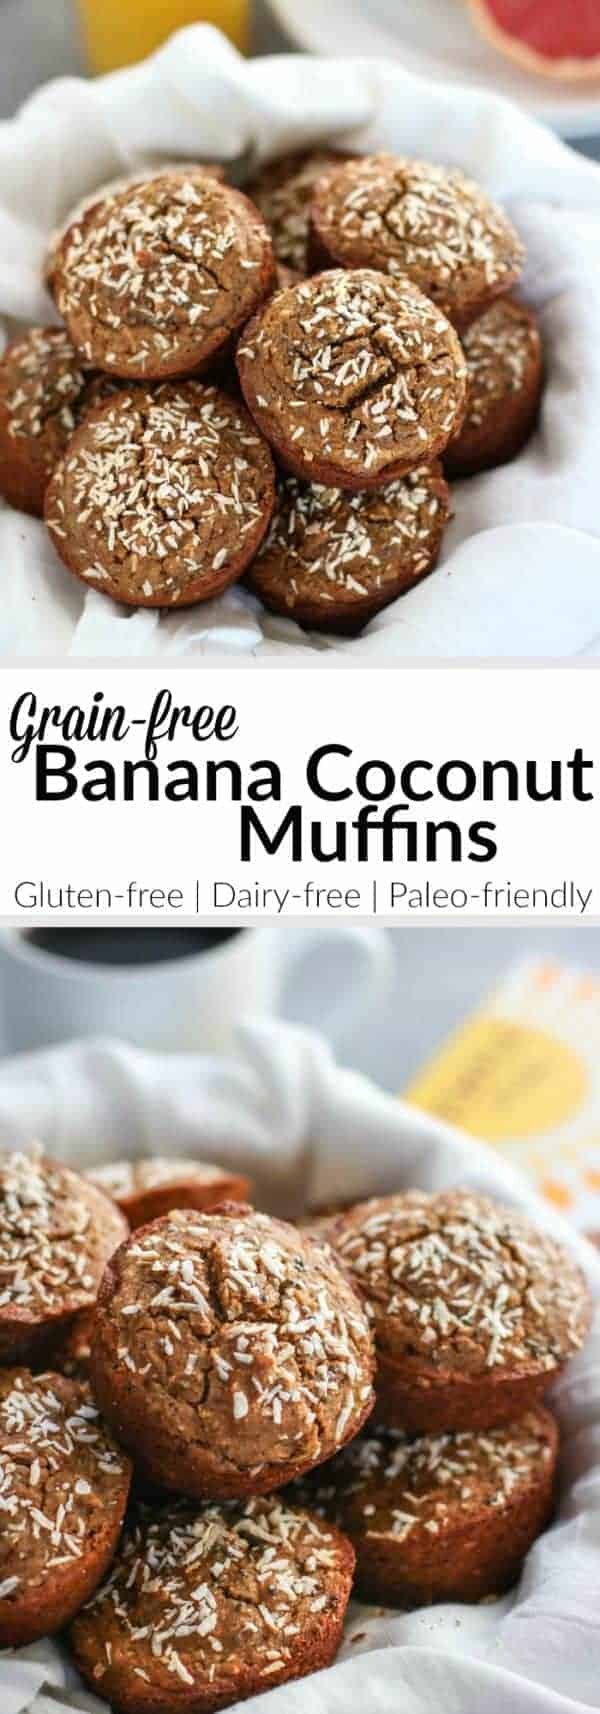 Grain-Free Banana Coconut Muffins | Grain-free, dairy-free Banana Muffins made with coconut and chia seeds to make your breakfast life a whole lot easier. Feel free to add mix-ins of your choice such as nuts, seeds, frozen berries or even leftover crumbled bacon! | therealfoodrds.com